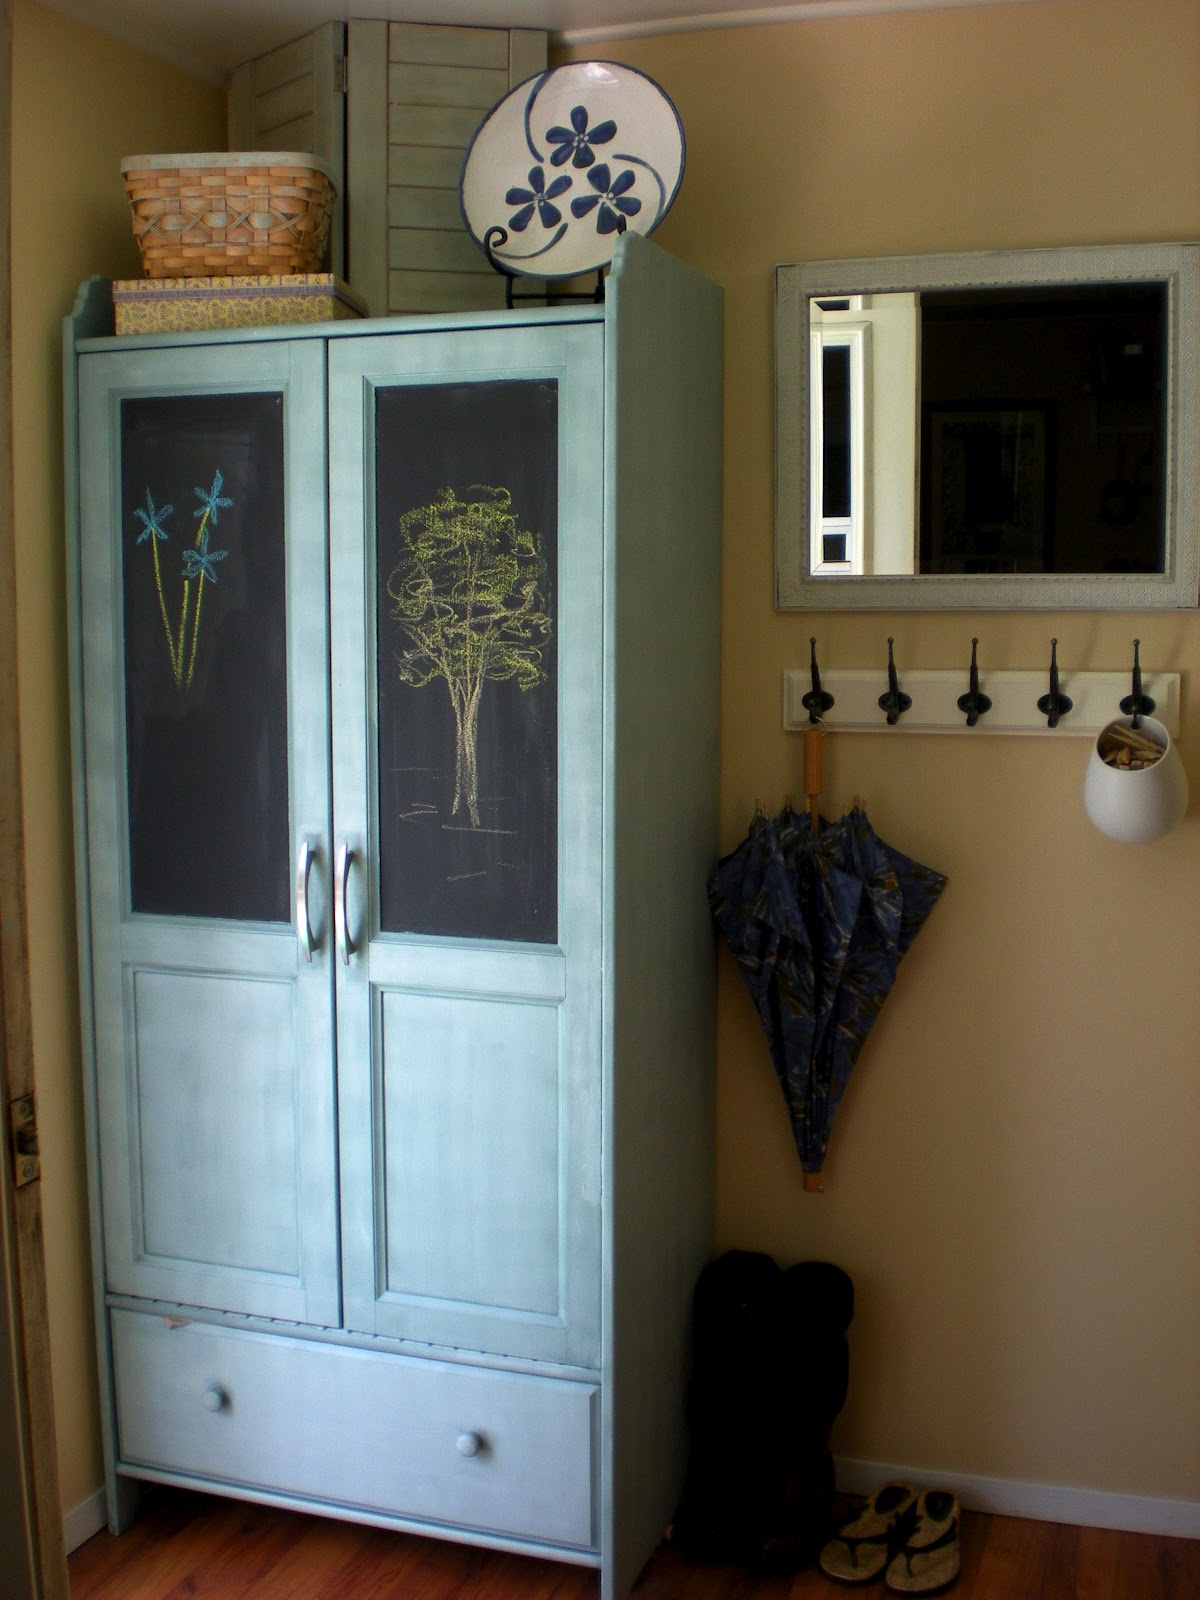 DesignDreams by Anne: The Pantry Joins In